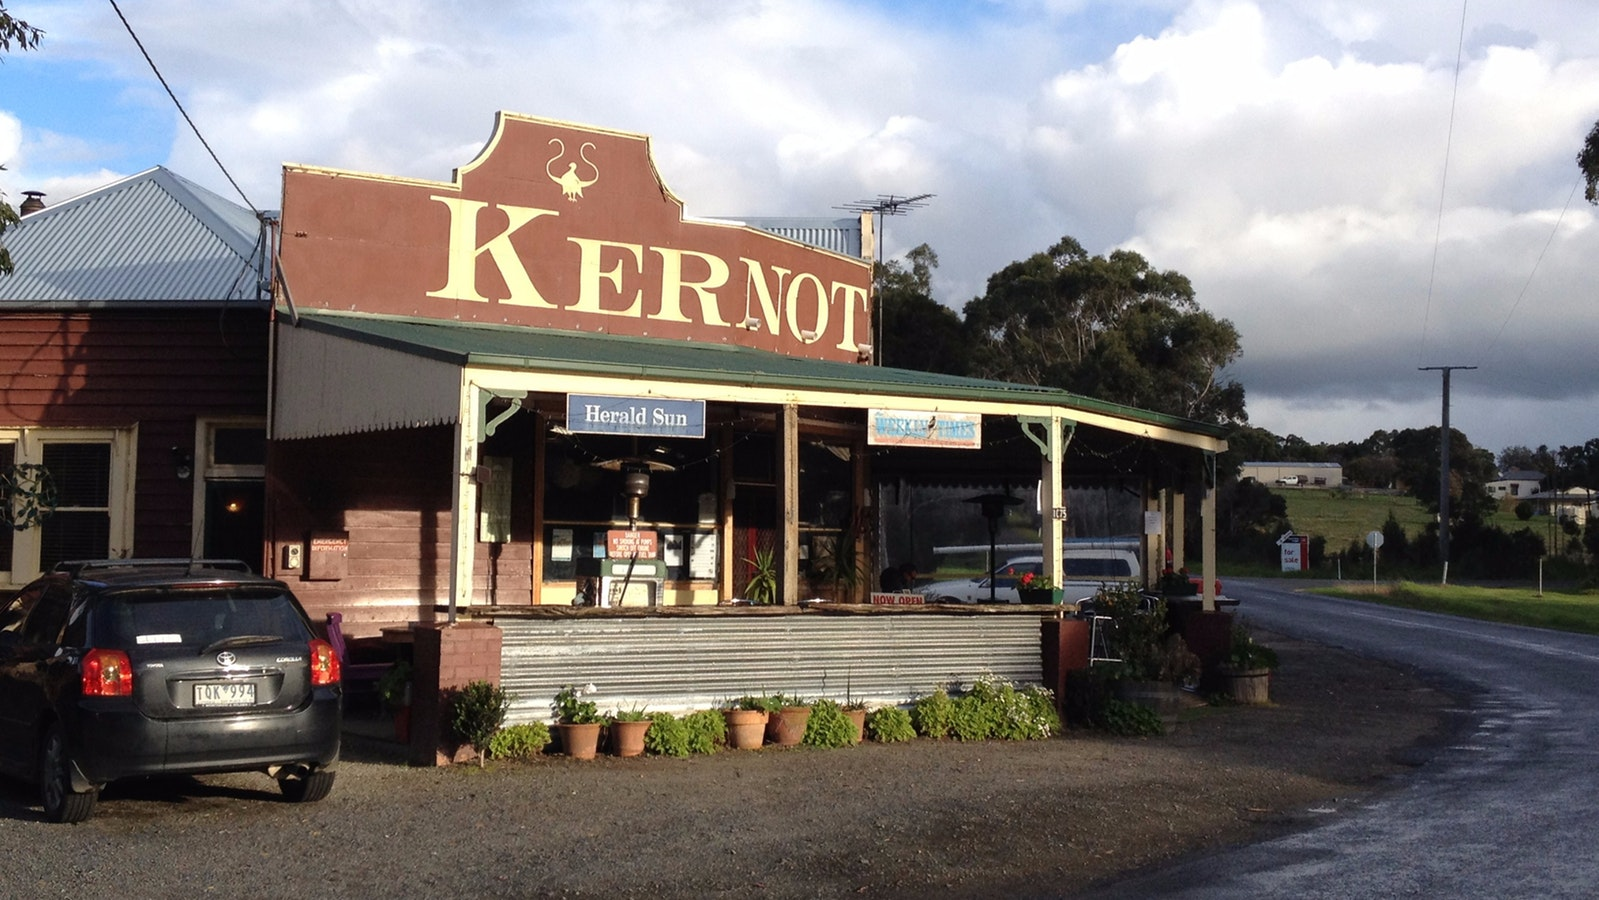 Kernot Store for lunch